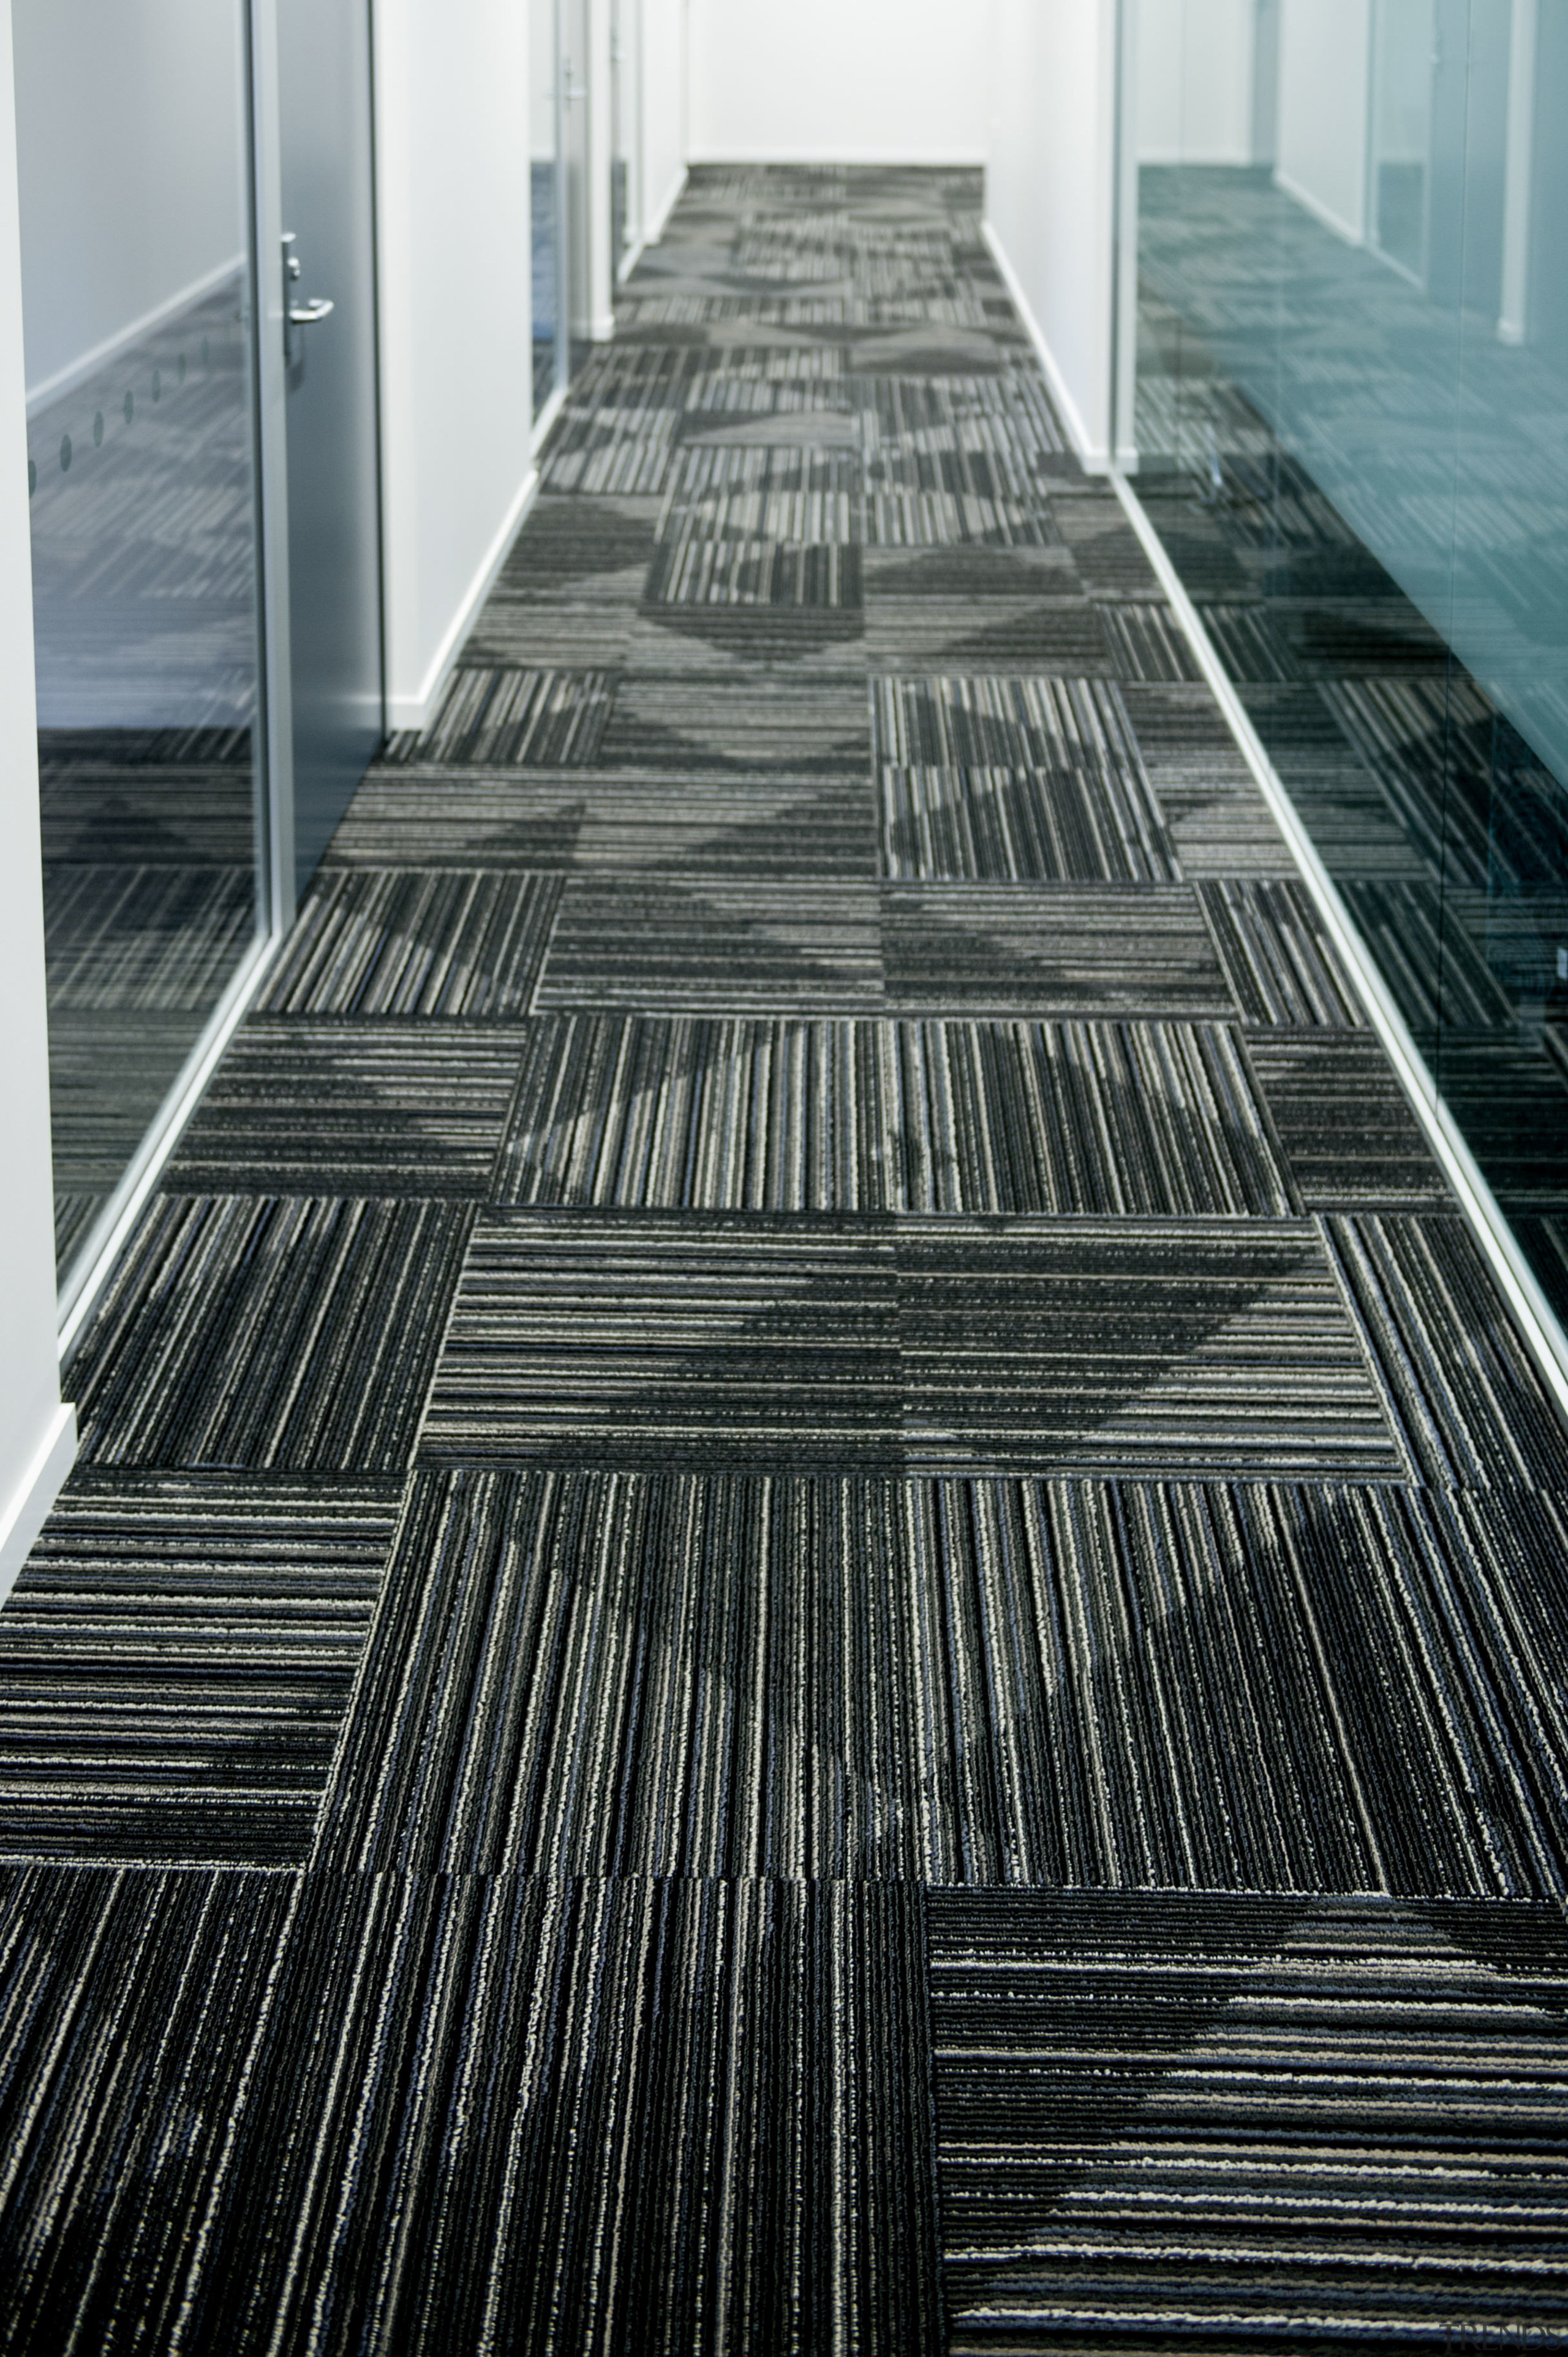 Durable, good-looking carpet tiles for commercial use architecture, black and white, building, daylighting, floor, flooring, line, monochrome, monochrome photography, reflection, structure, tile, wood, black, gray